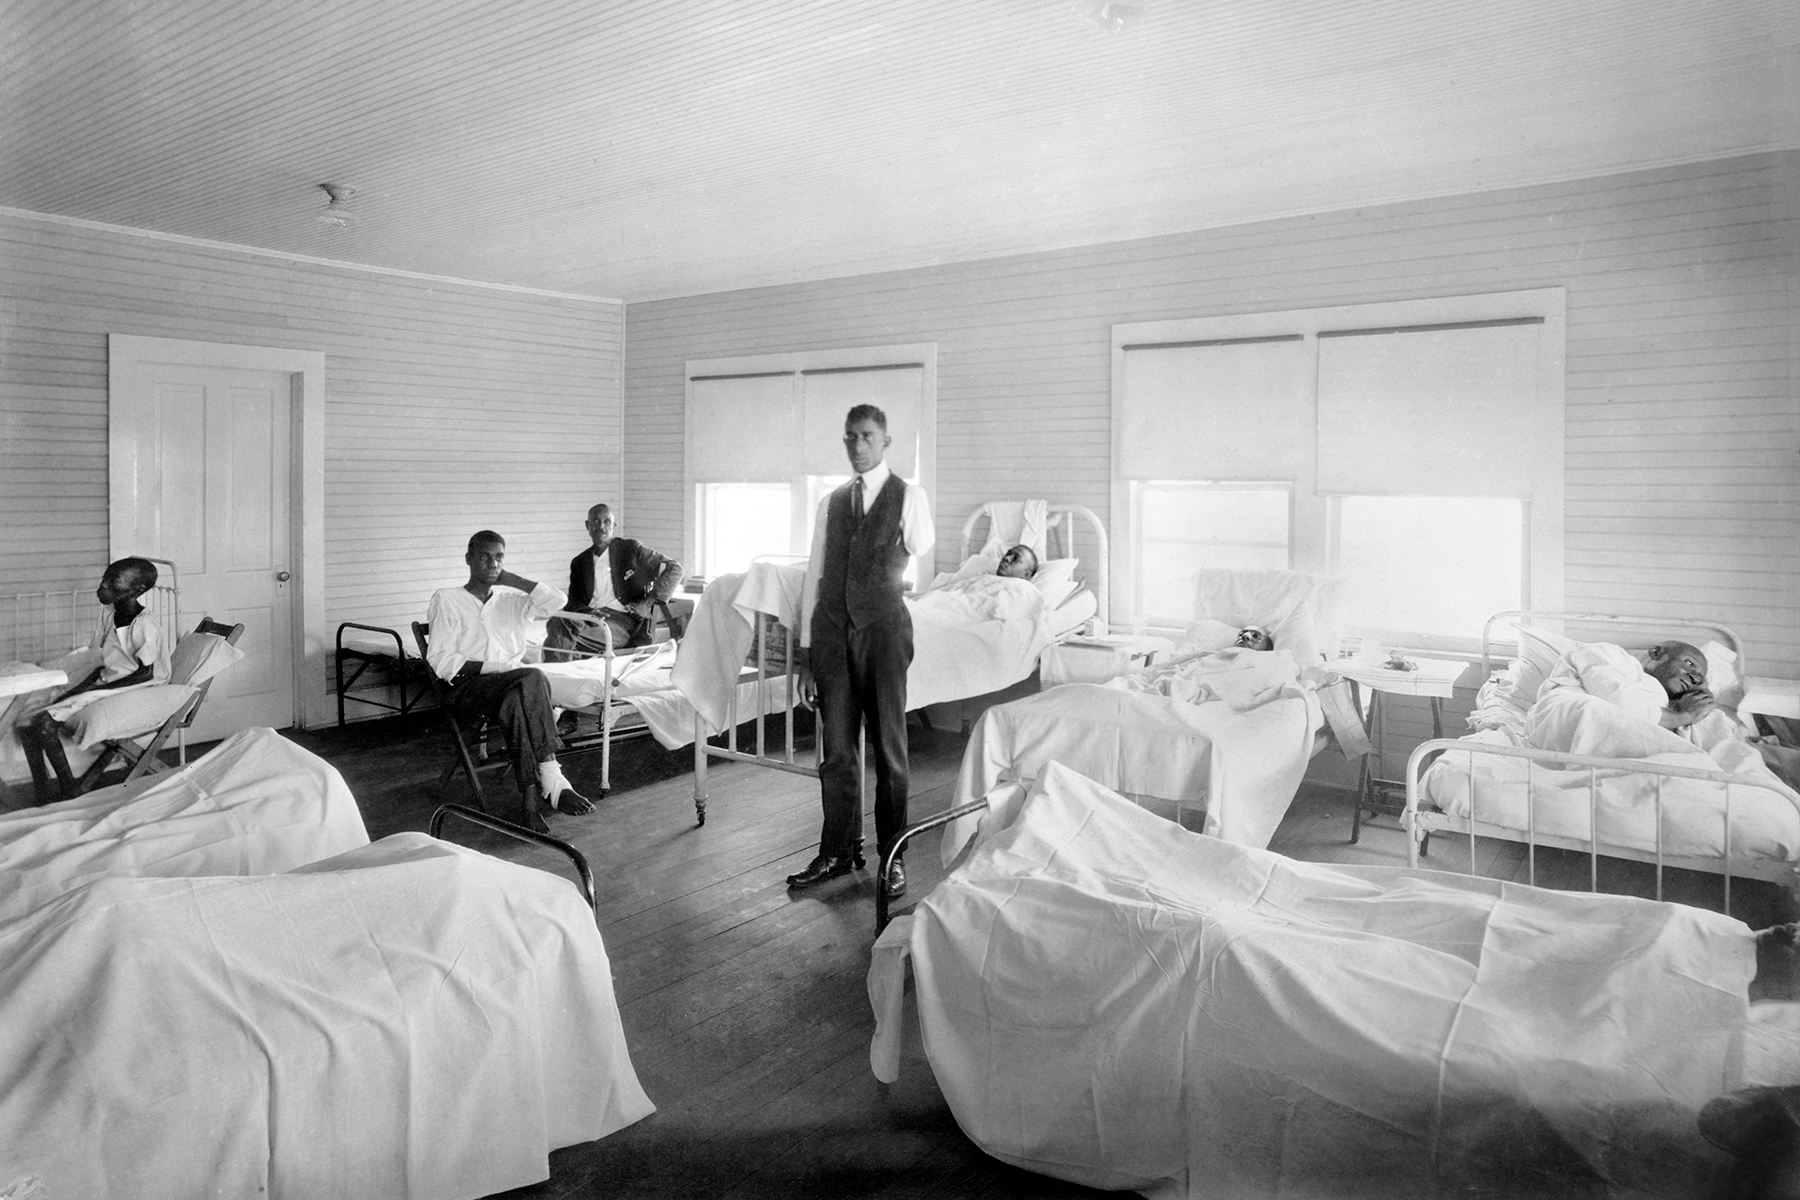 Patients recovering from Effects of Race Riot of June 1st,, American Red Cross Hospital, Tulsa, Oklahoma, USA, American National Red Cross Photograph Collection, November 1921. (Photo by: GHI/Universal History Archive/Universal Images Group via Getty Images)